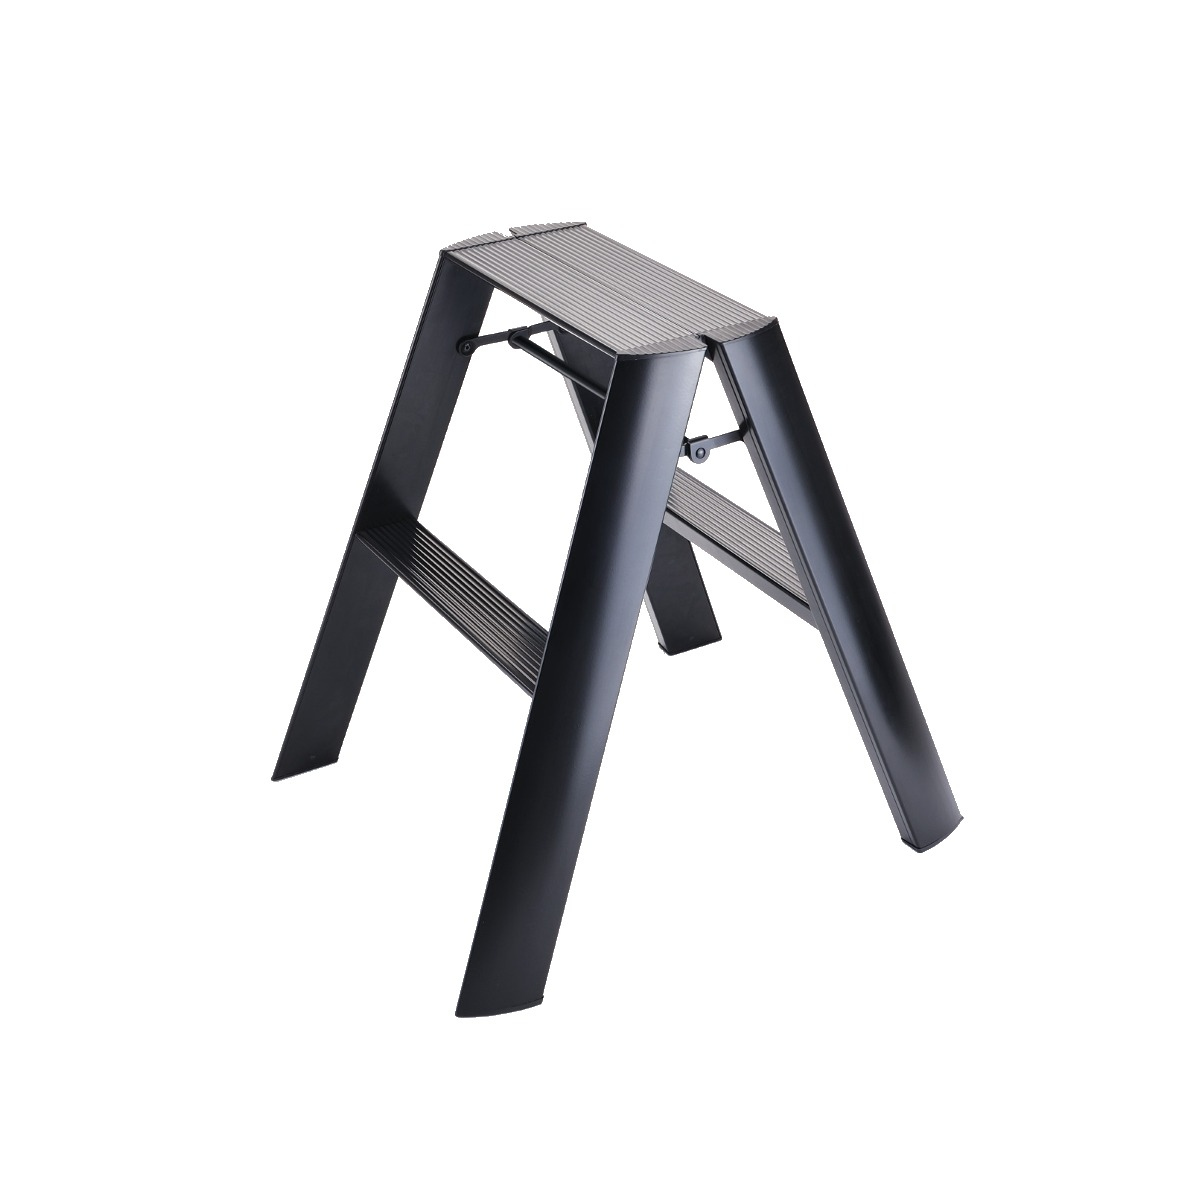 Terrific Lucano Step Stools Hasegawa Ladders Caraccident5 Cool Chair Designs And Ideas Caraccident5Info